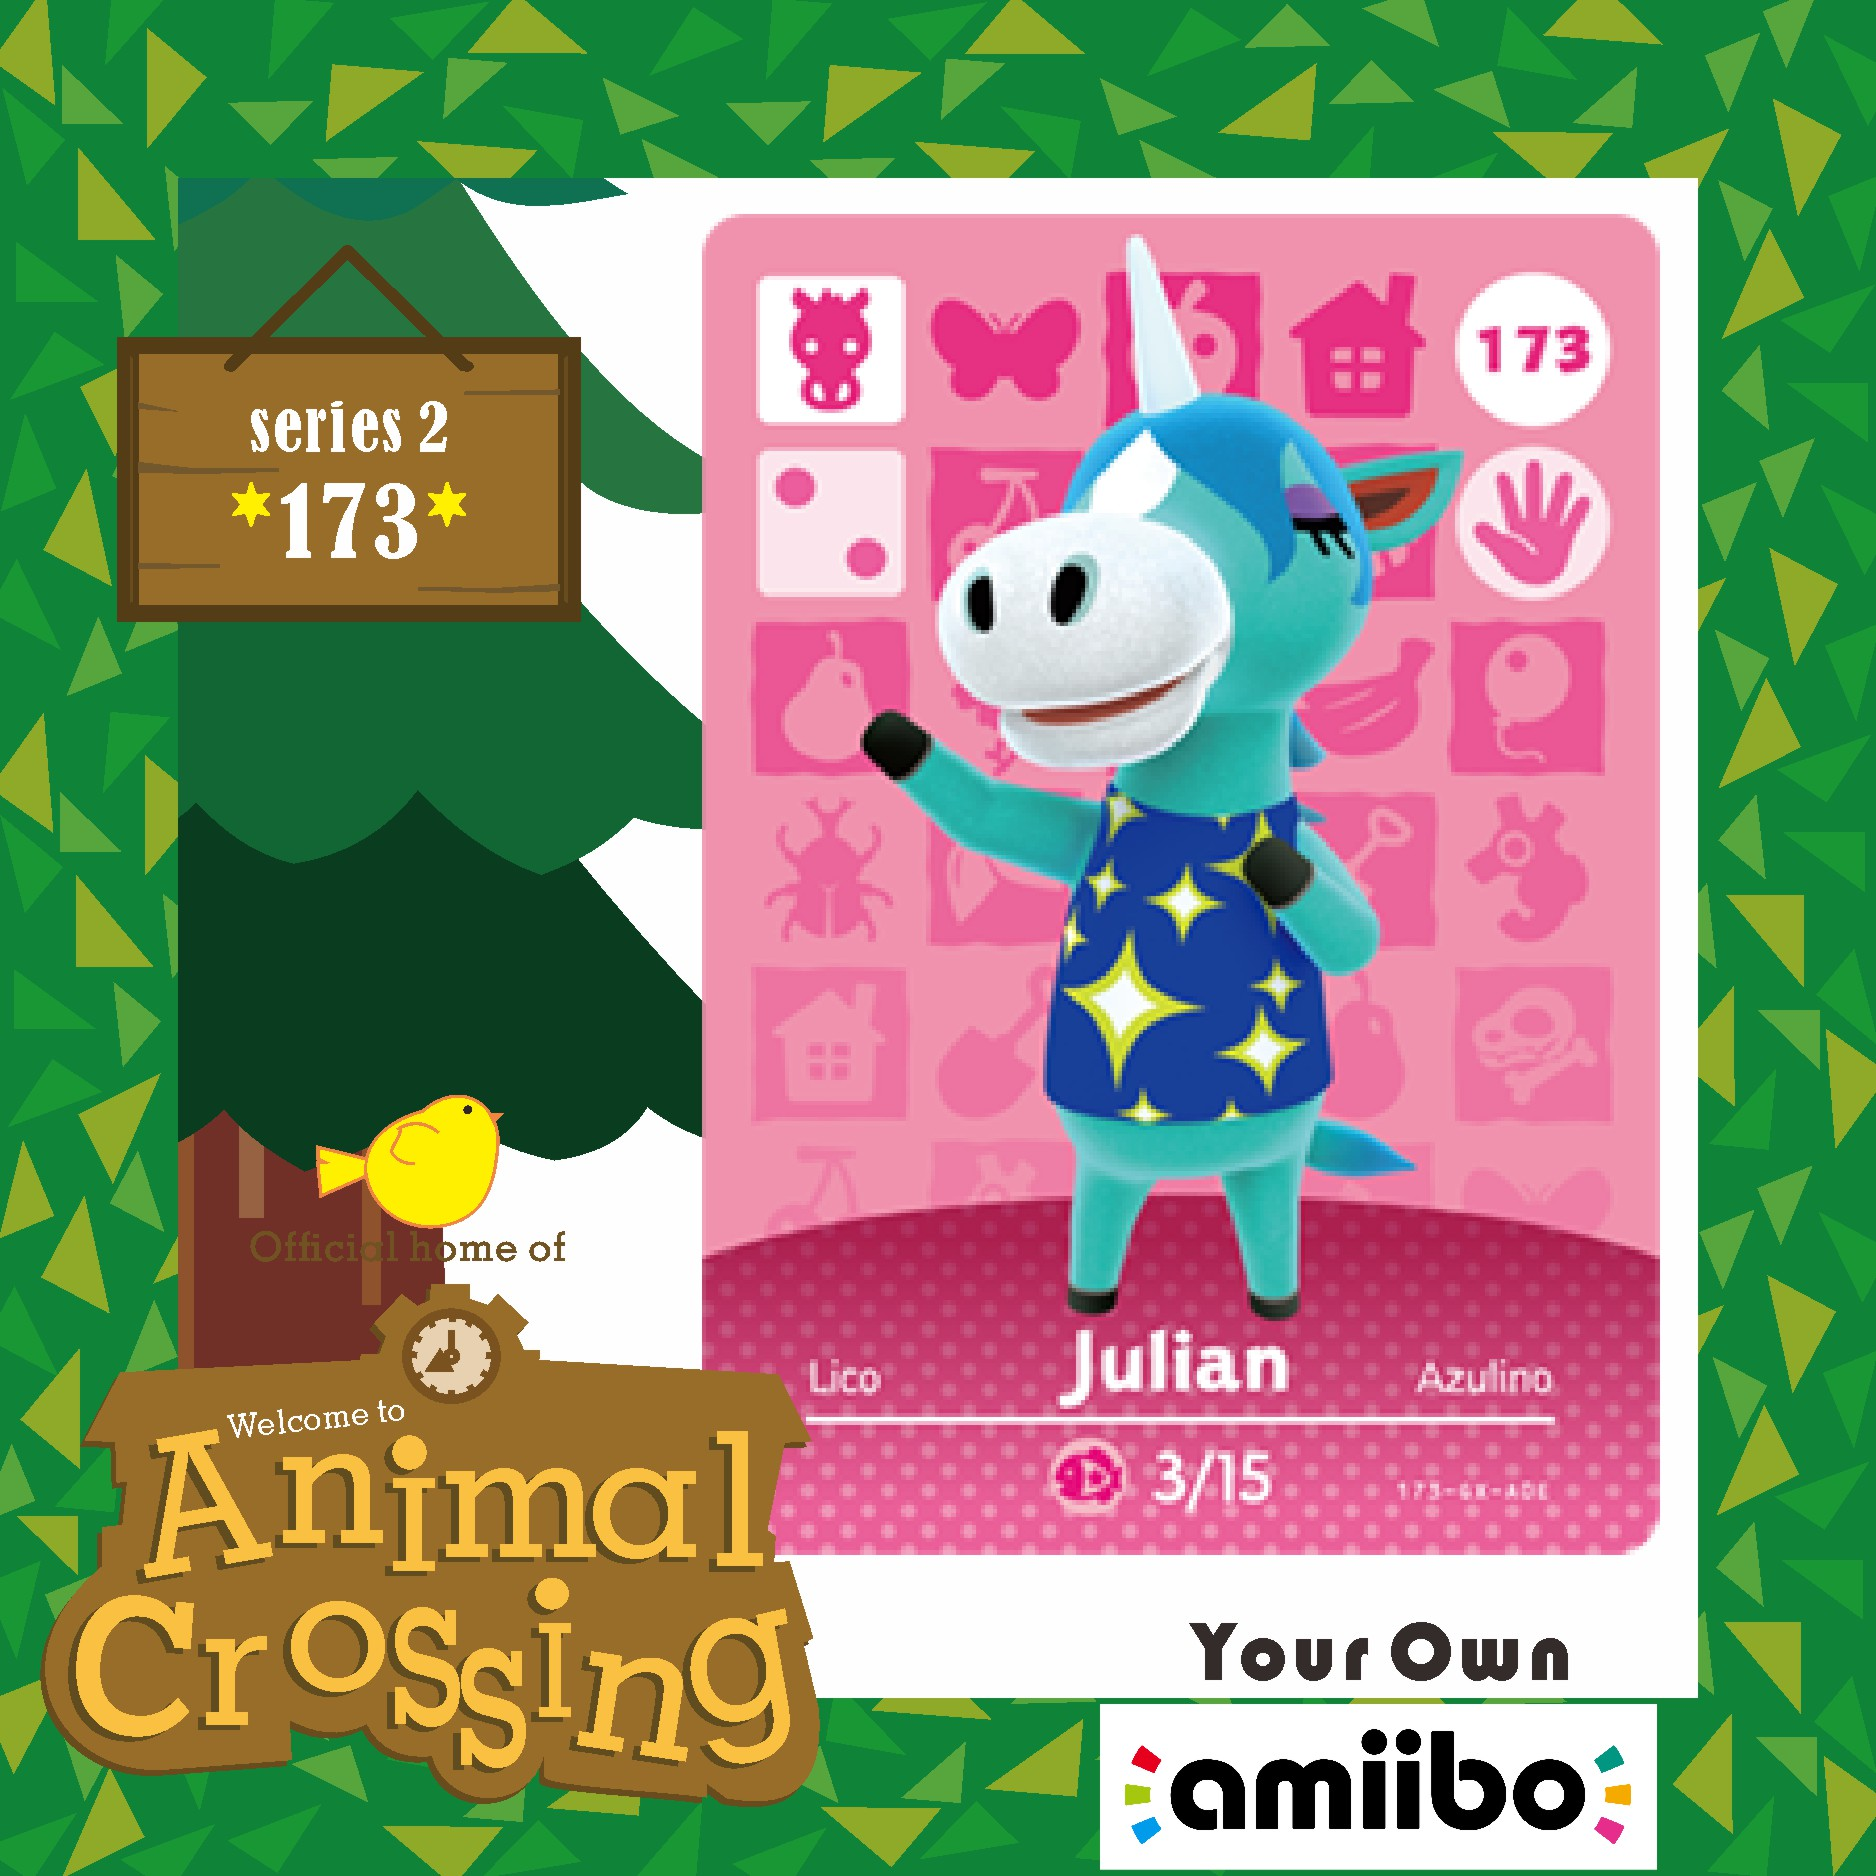 Animal Crossing New Horizons Welcome Amiibo Game  Animal Crossing Villager Amiibo  Card Julian 173 Season Set Series 2